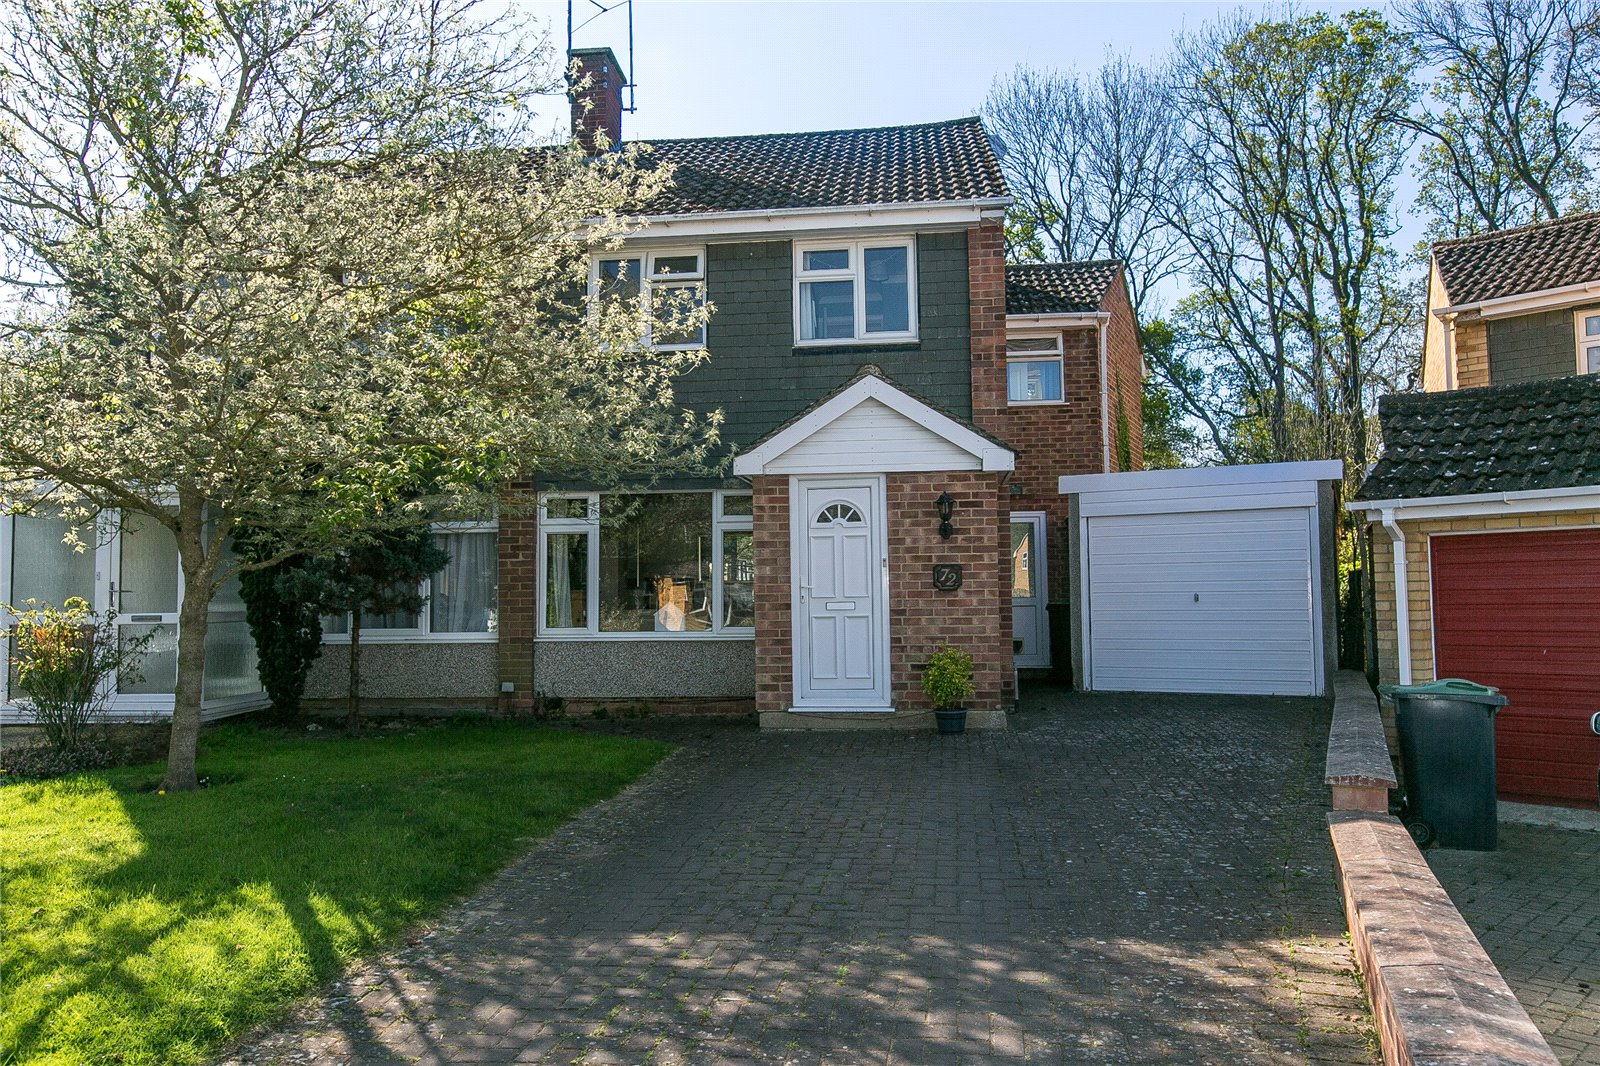 Darwin Drive, Tonbridge, Kent, TN10